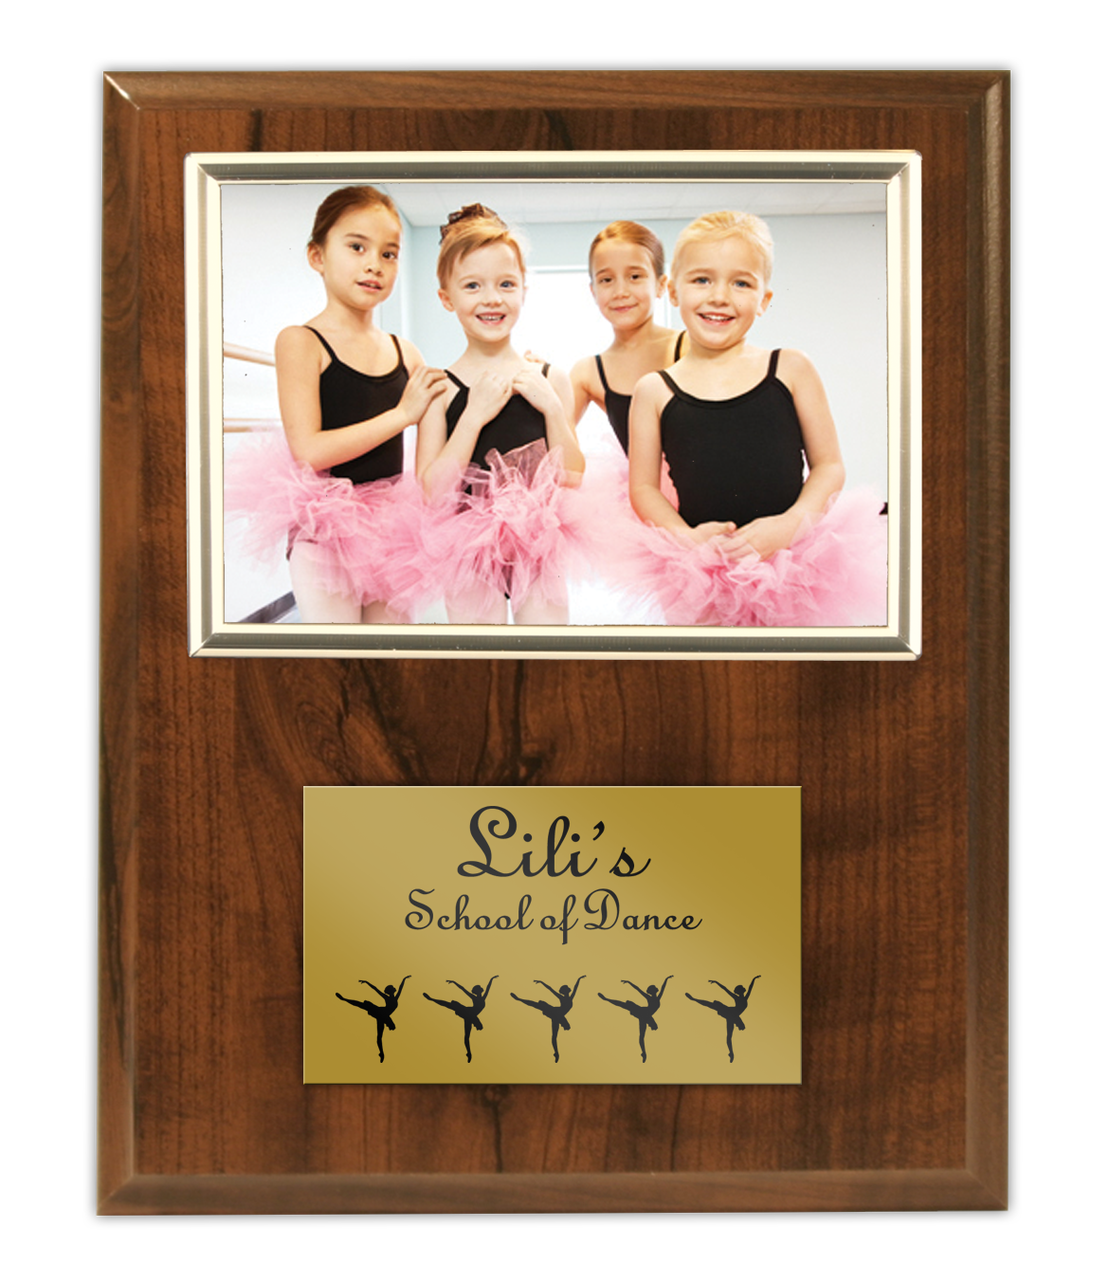 Budget Beater Cherry Photo Frame Plaque, 9 x 12 - RecognitionWorx